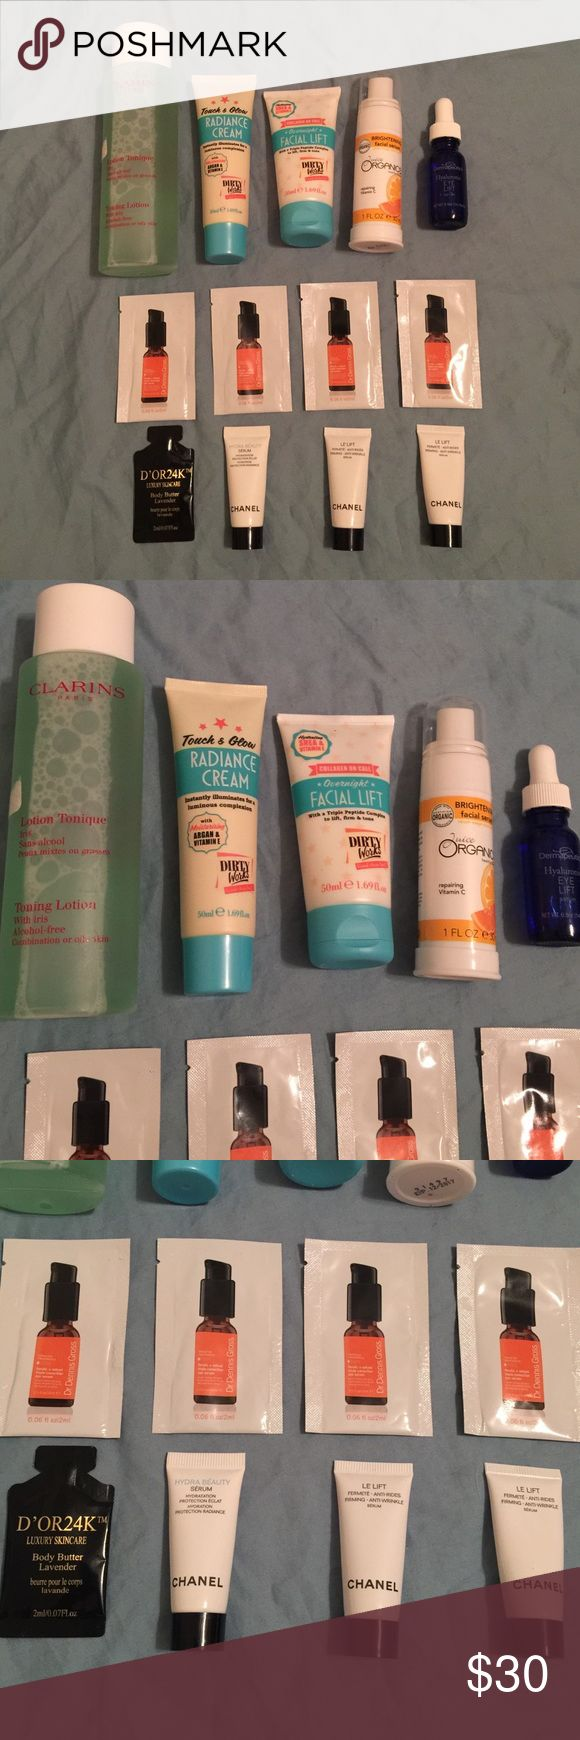 Lot of beauty care CHANEL CLARINS DIRTY WORKS Lot of face care products. Lot of 13 pieces! Includes: 1x CLARINS Paris Toning Lotion with iris alcohol-free 200ML. 1x DIRTY WORKS radiance cream 50ML. 1x DIRTY WORKS overnight facial lift 50ML. 1x Juice Organics brightening facial serum 30ML.  1x Dermaleutics hyaluronic eye lift serum 14.78ML. 4x Dr.Dennis Gross ferulic + retinol triple correction serum 15ML EACH. 2x CHANEL LE LIFT 5ML EACH. 1x CHANEL HYDRA BEAUTY SERUM 50ML. 1x D'OR 24K body…